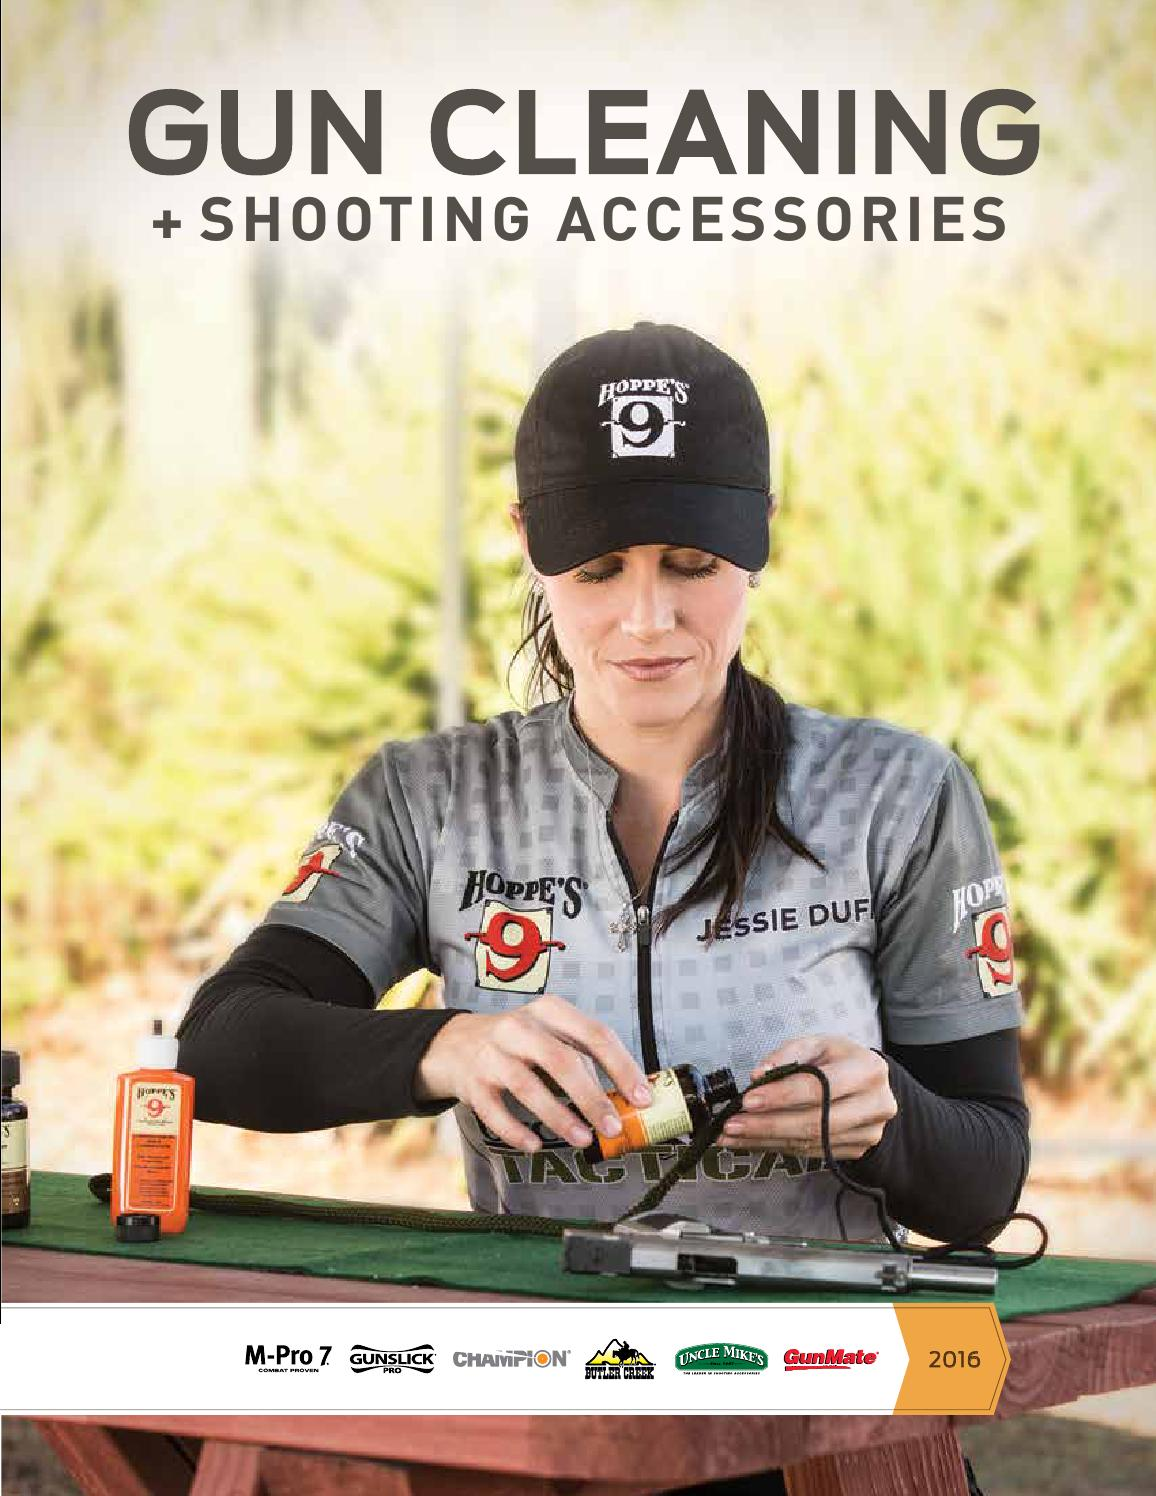 667b54b7fb61 2016 Shooting Accessories Catalog US - English by Bushnell - issuu